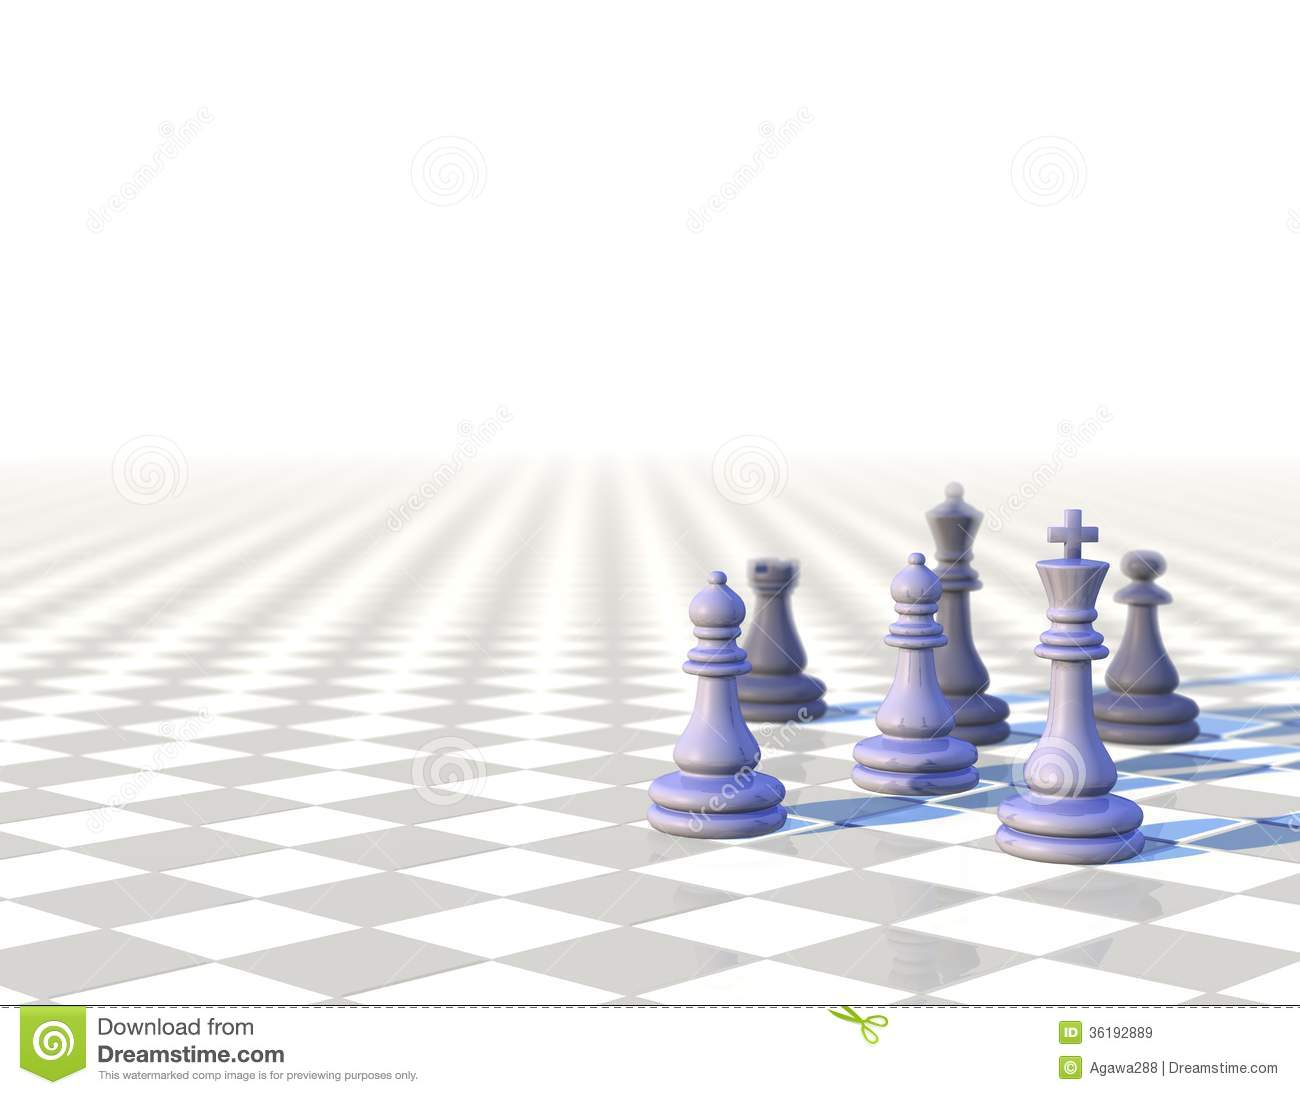 Modern 3d Wallpaper Texture 3d Business Elegant Background With Chess Pawns Royalty